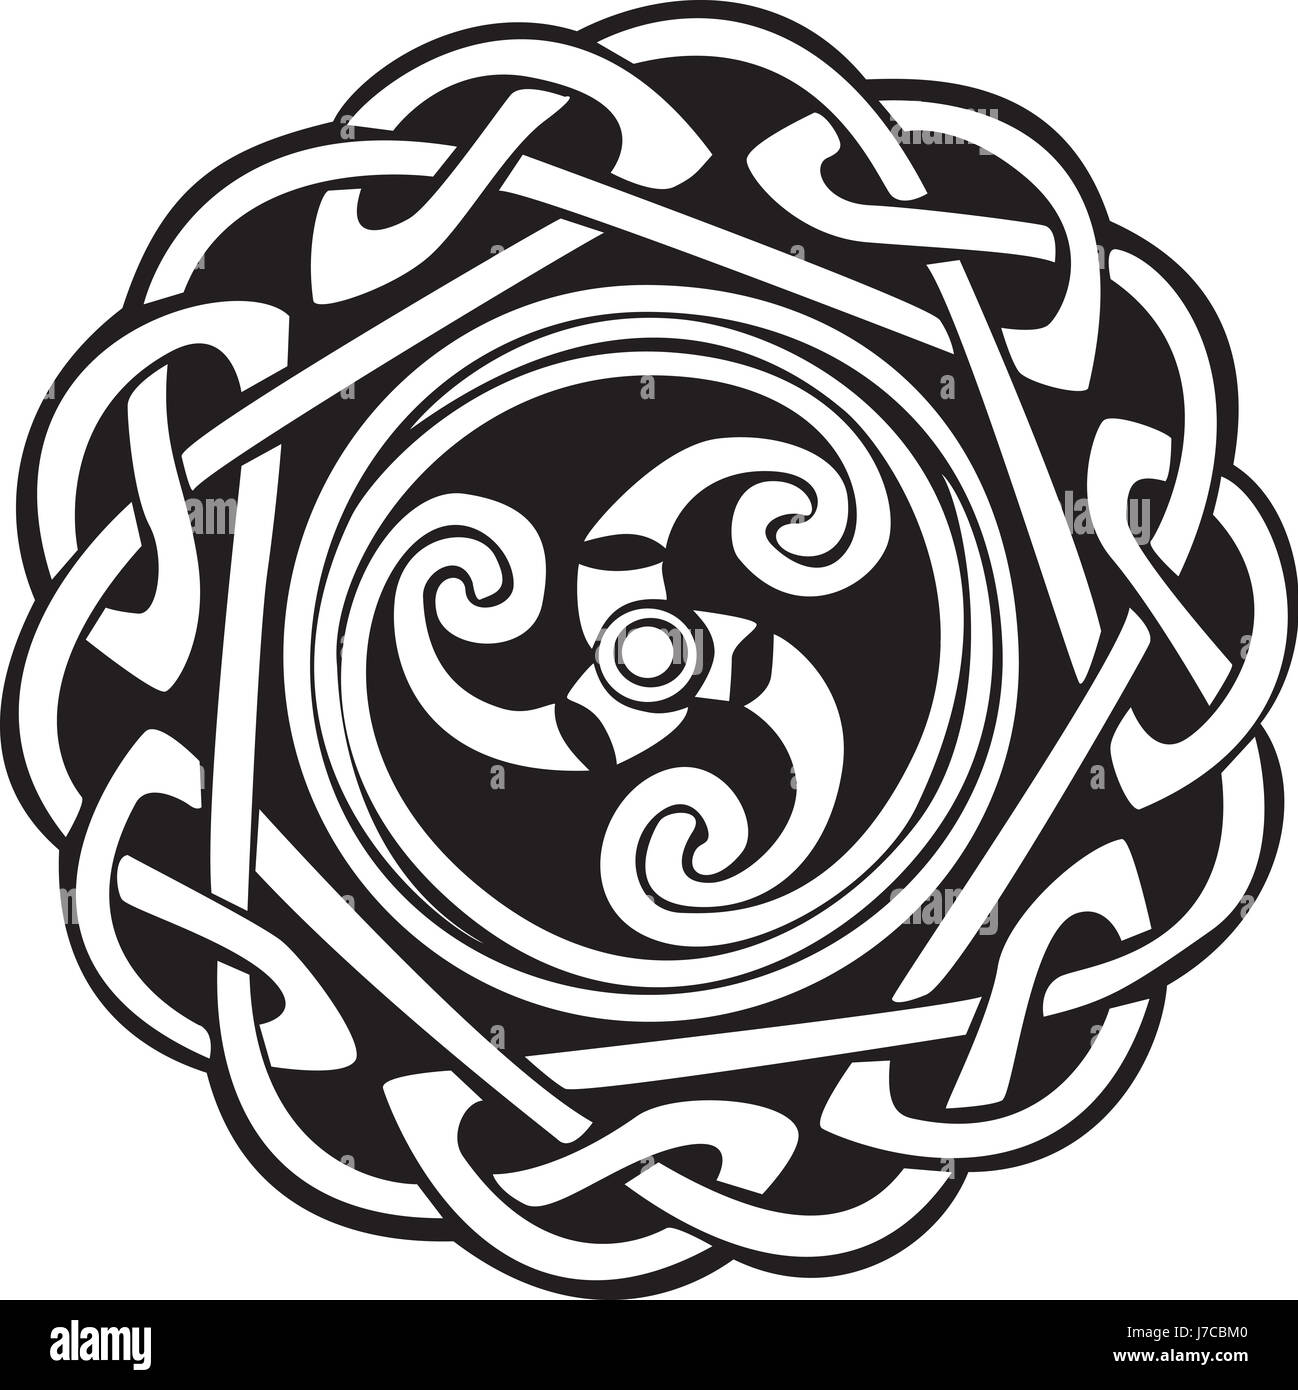 art black swarthy jetblack deep black abstract pattern complex celtic art - Stock Image